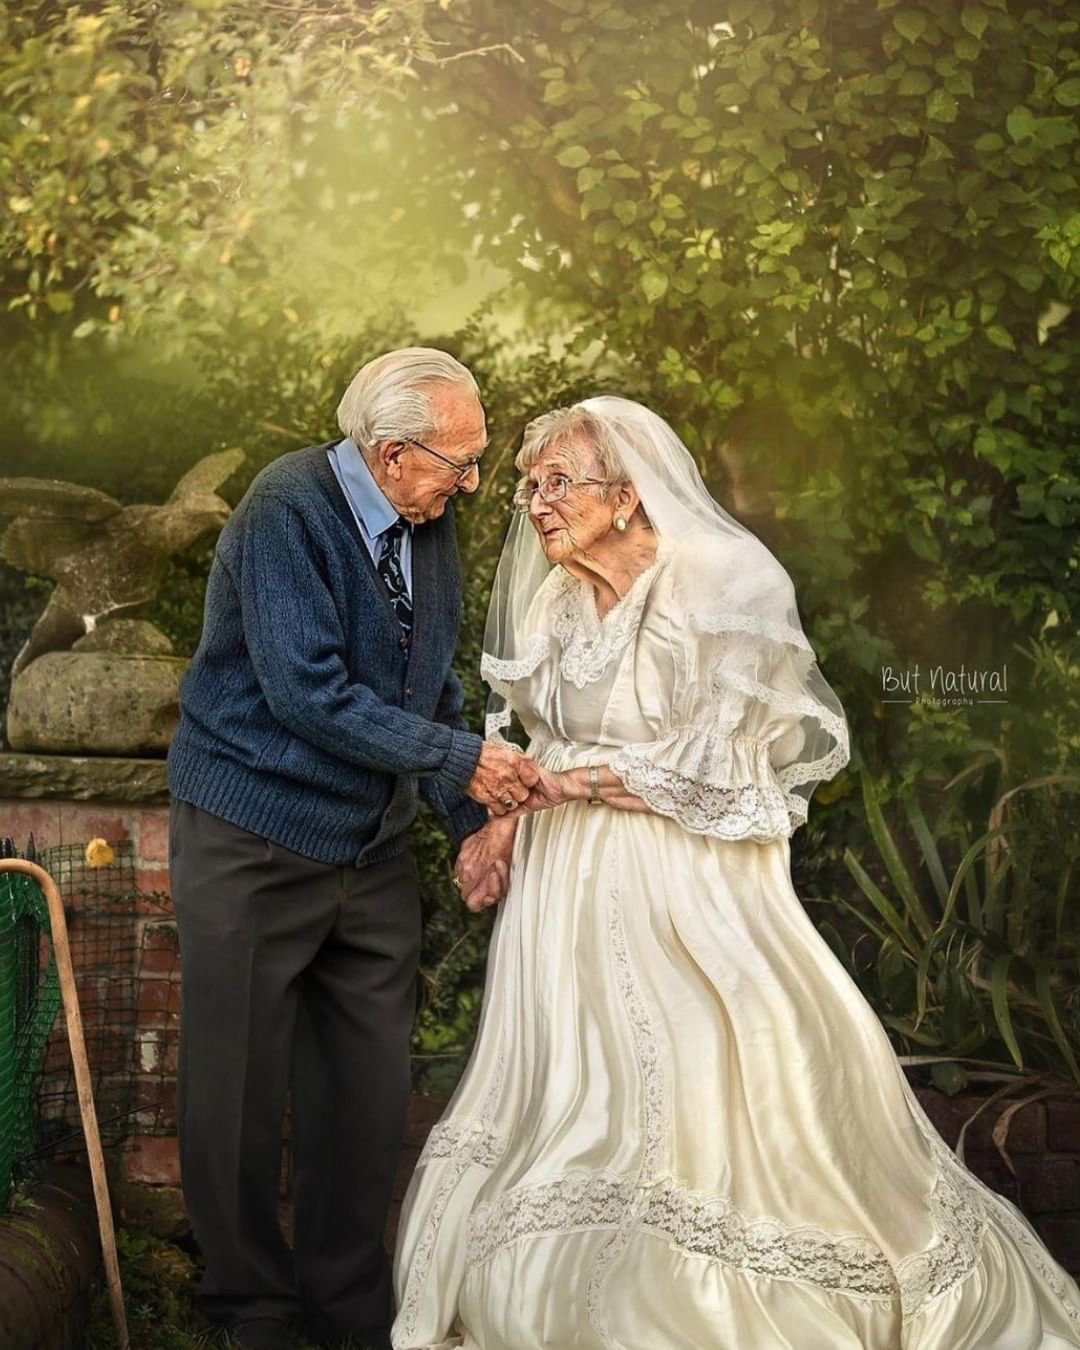 popular instagram posts 2020 old wedding from 68 years butnaturalphotography